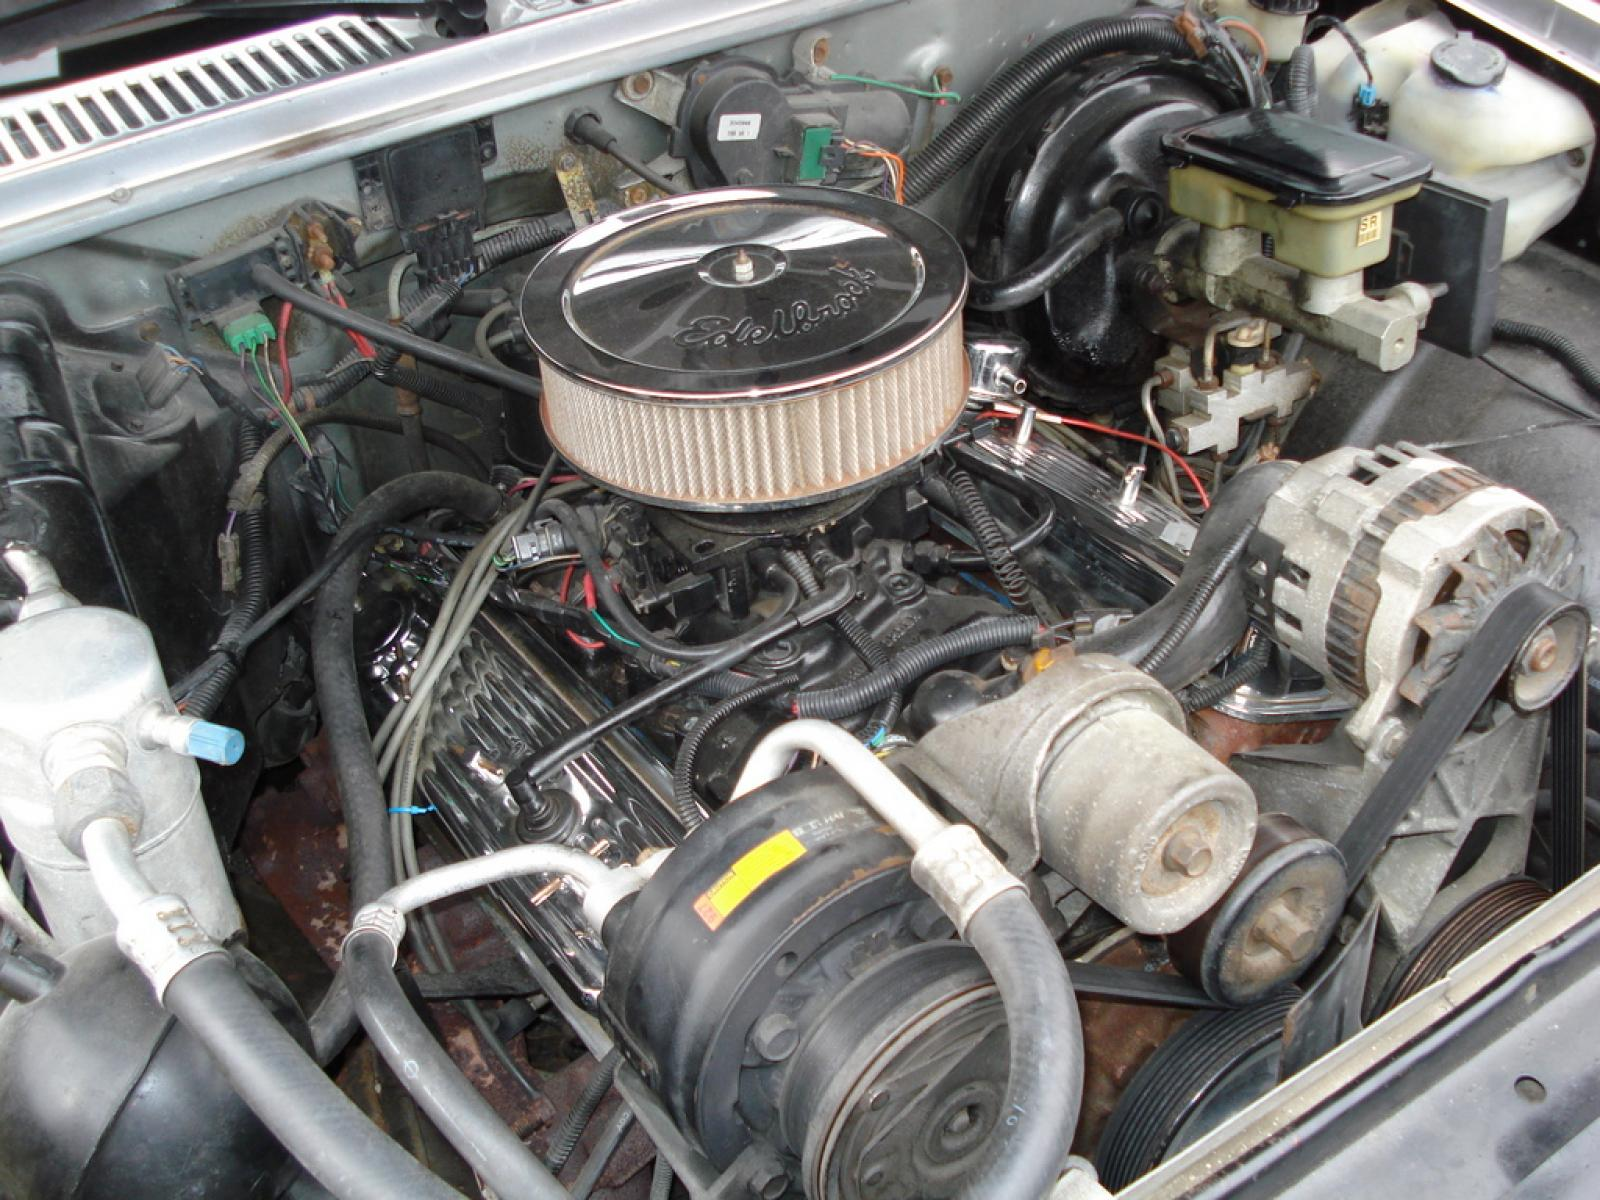 1965 Mustang fastback with cammer engine moreover 1962 Thunderbird besides S915374 together with Where is the oil pressure switch located in a GMC Truck 2004 besides 976308. on 3 8 in line mini fuel filter